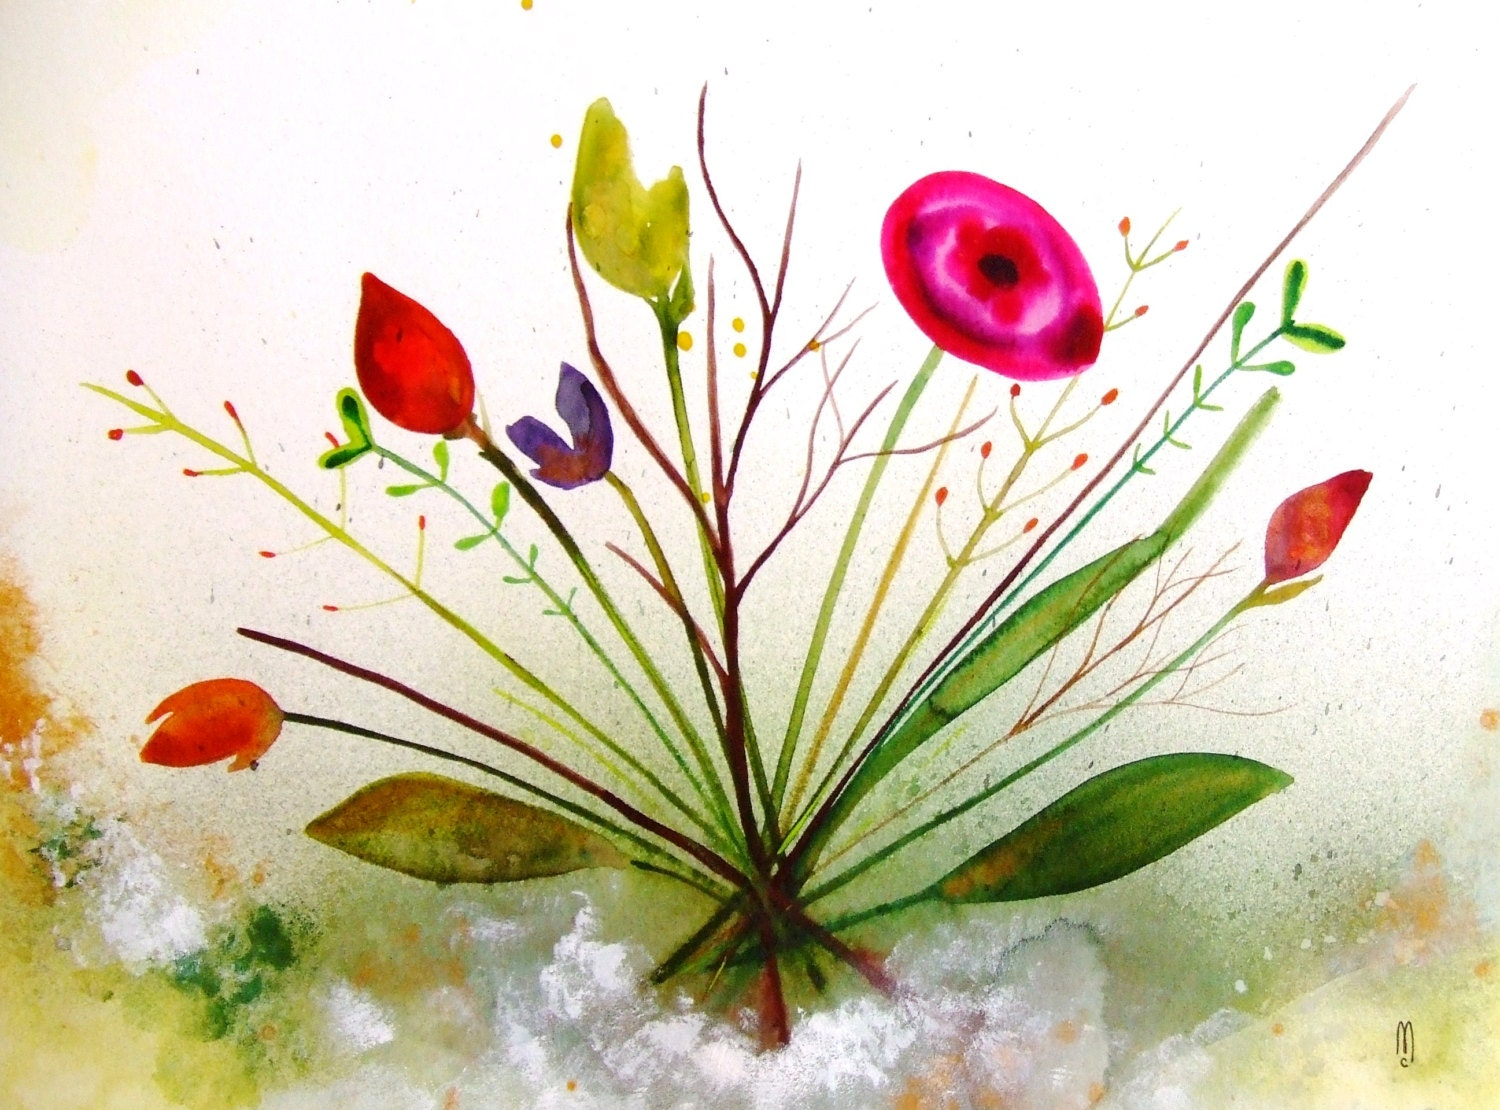 Flowers Original Watercolor Painting Ink Drawing Contemporary Modern Art Botanical Decor Garden Leave Bouquet Green Pink Wall Art Flowers - CelineArtGalerie